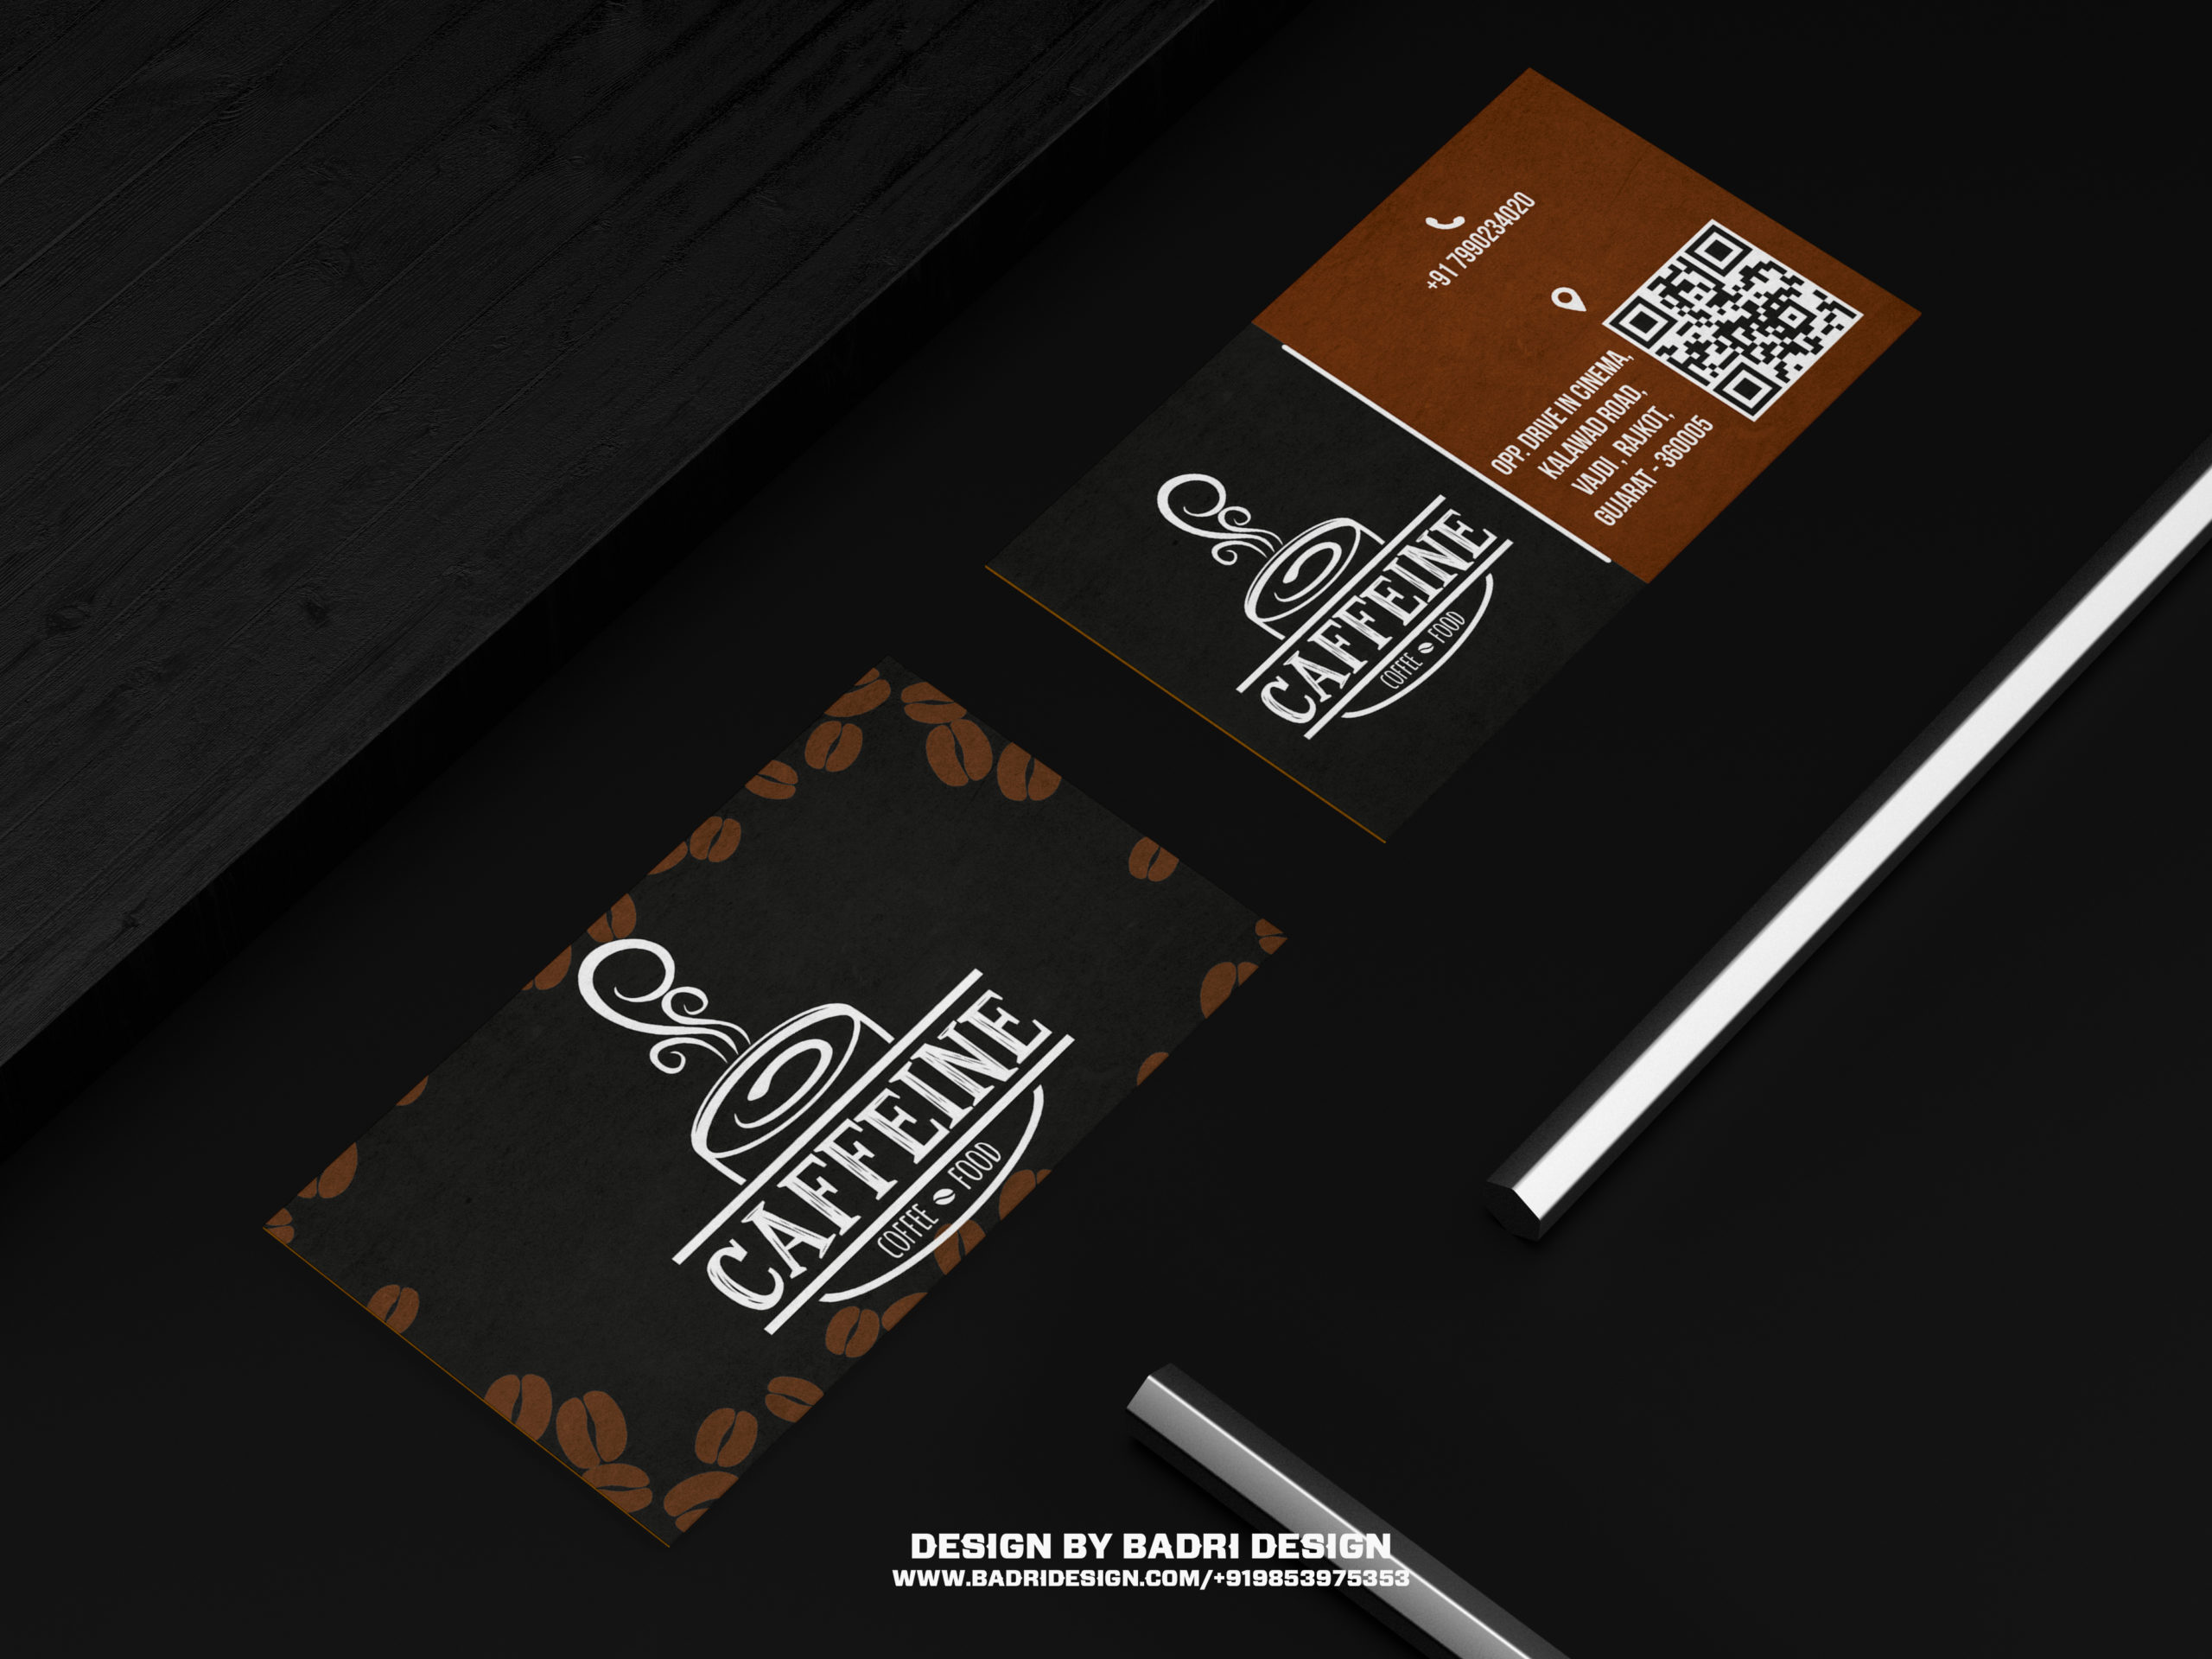 Caffeine and café business card design by Badri design